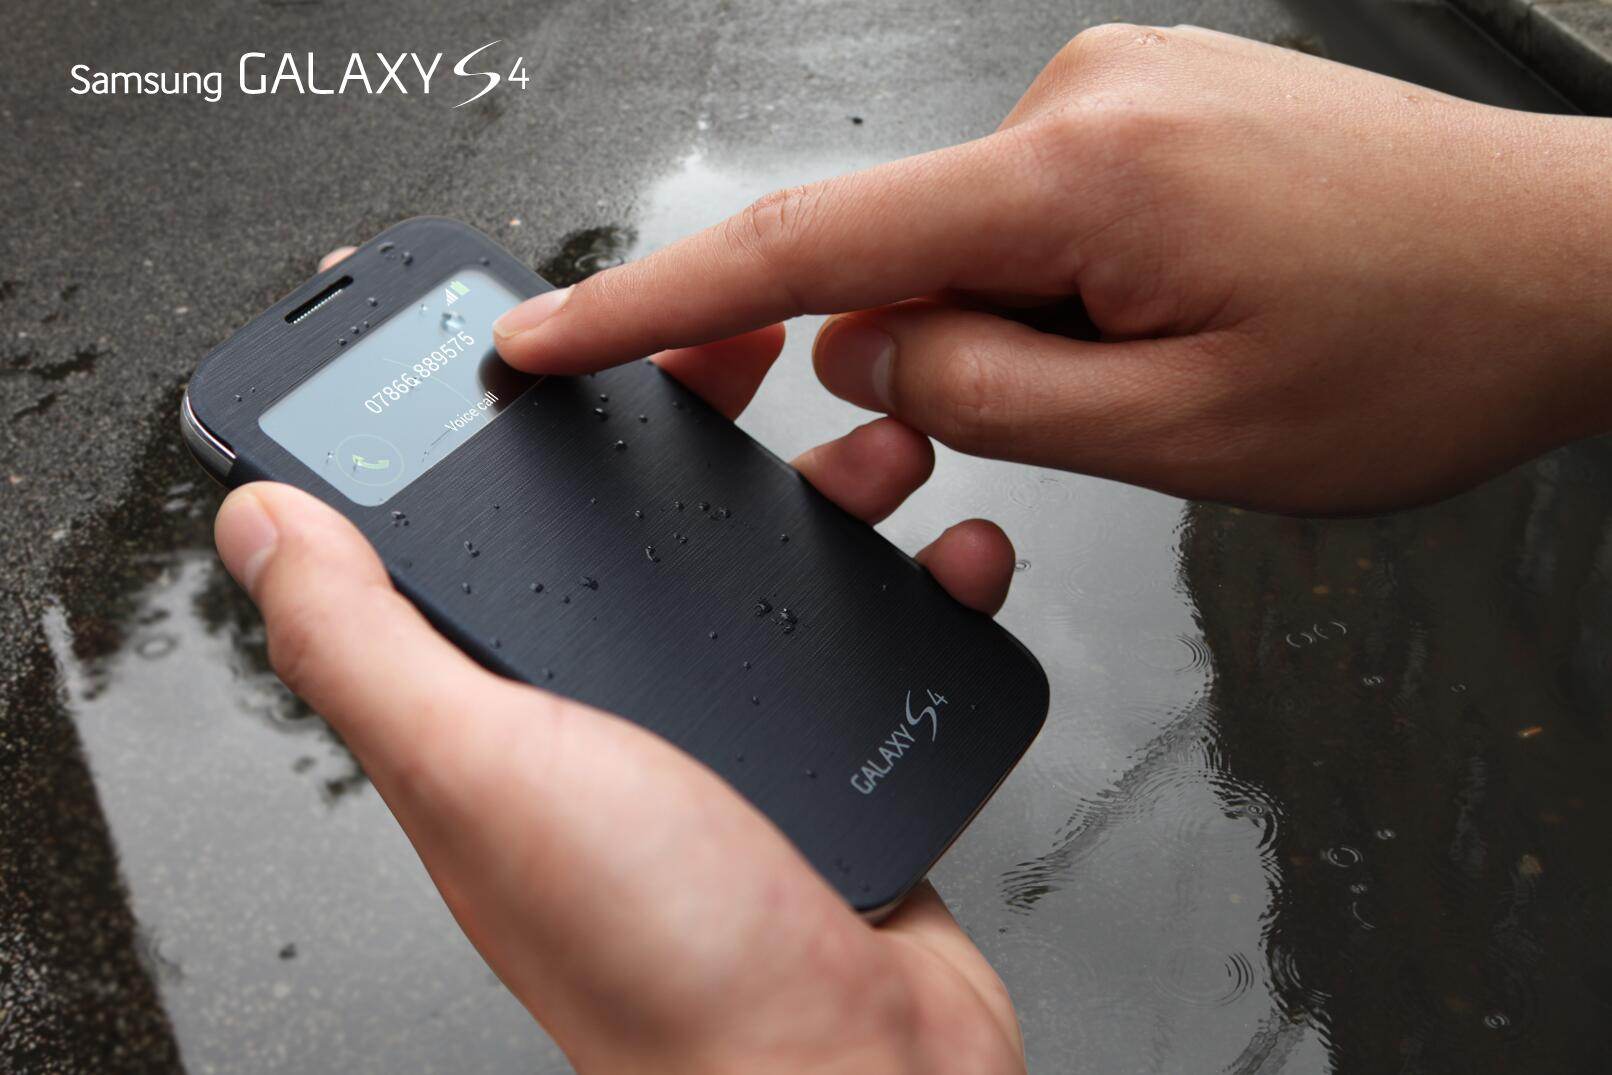 Protect your #GALAXYS4 with style. S View Cover provides the convenience of a screen window for status & alerts. http://t.co/38B673cjTN